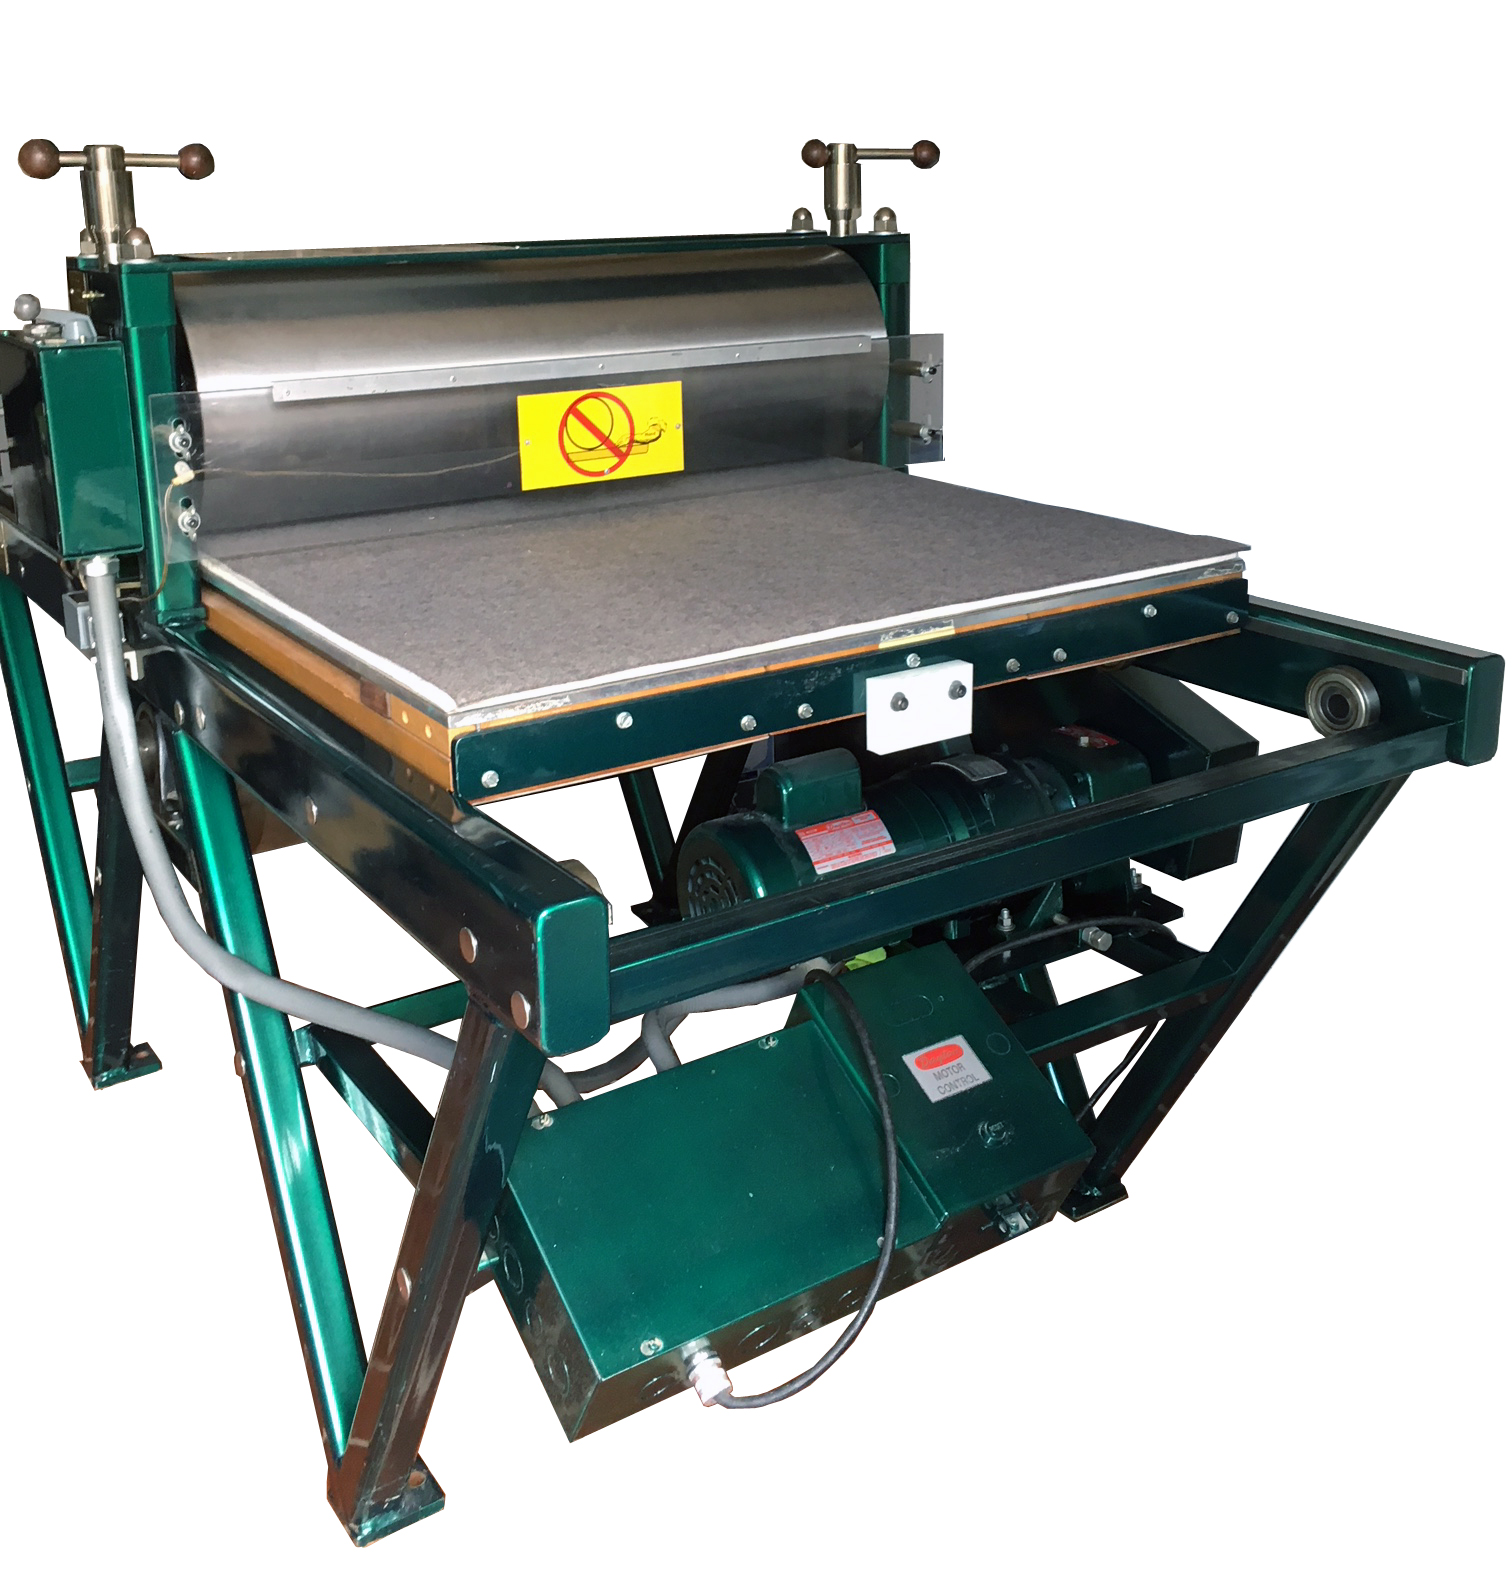 Takach Press - Used Presses: Etching and Lithography